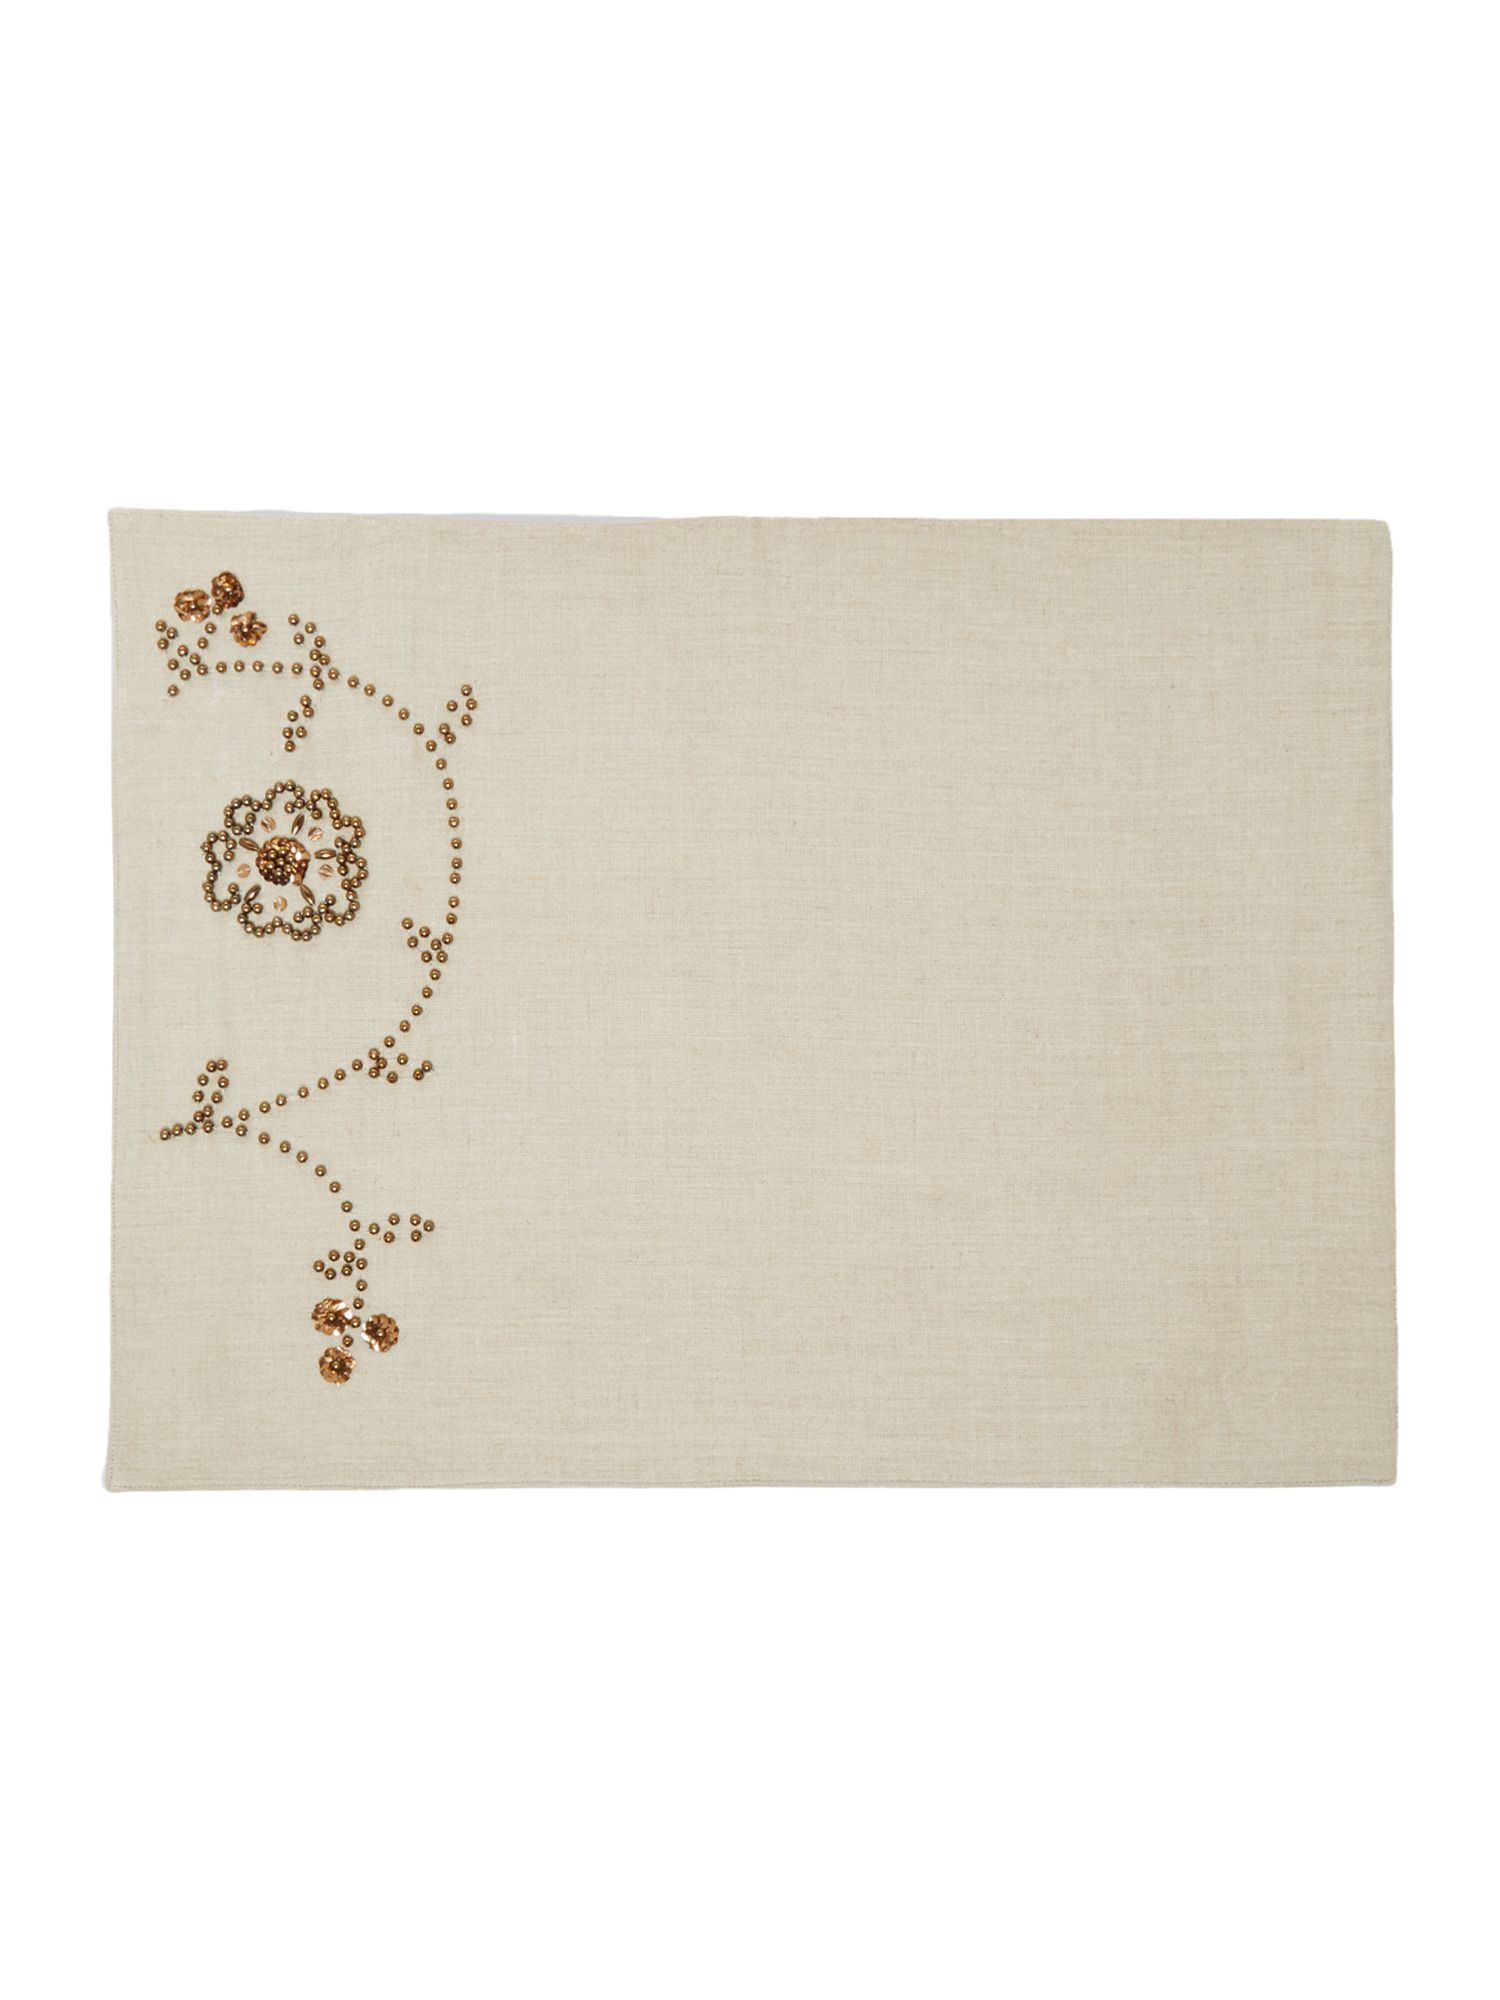 Serenity beaded placemats set of 2